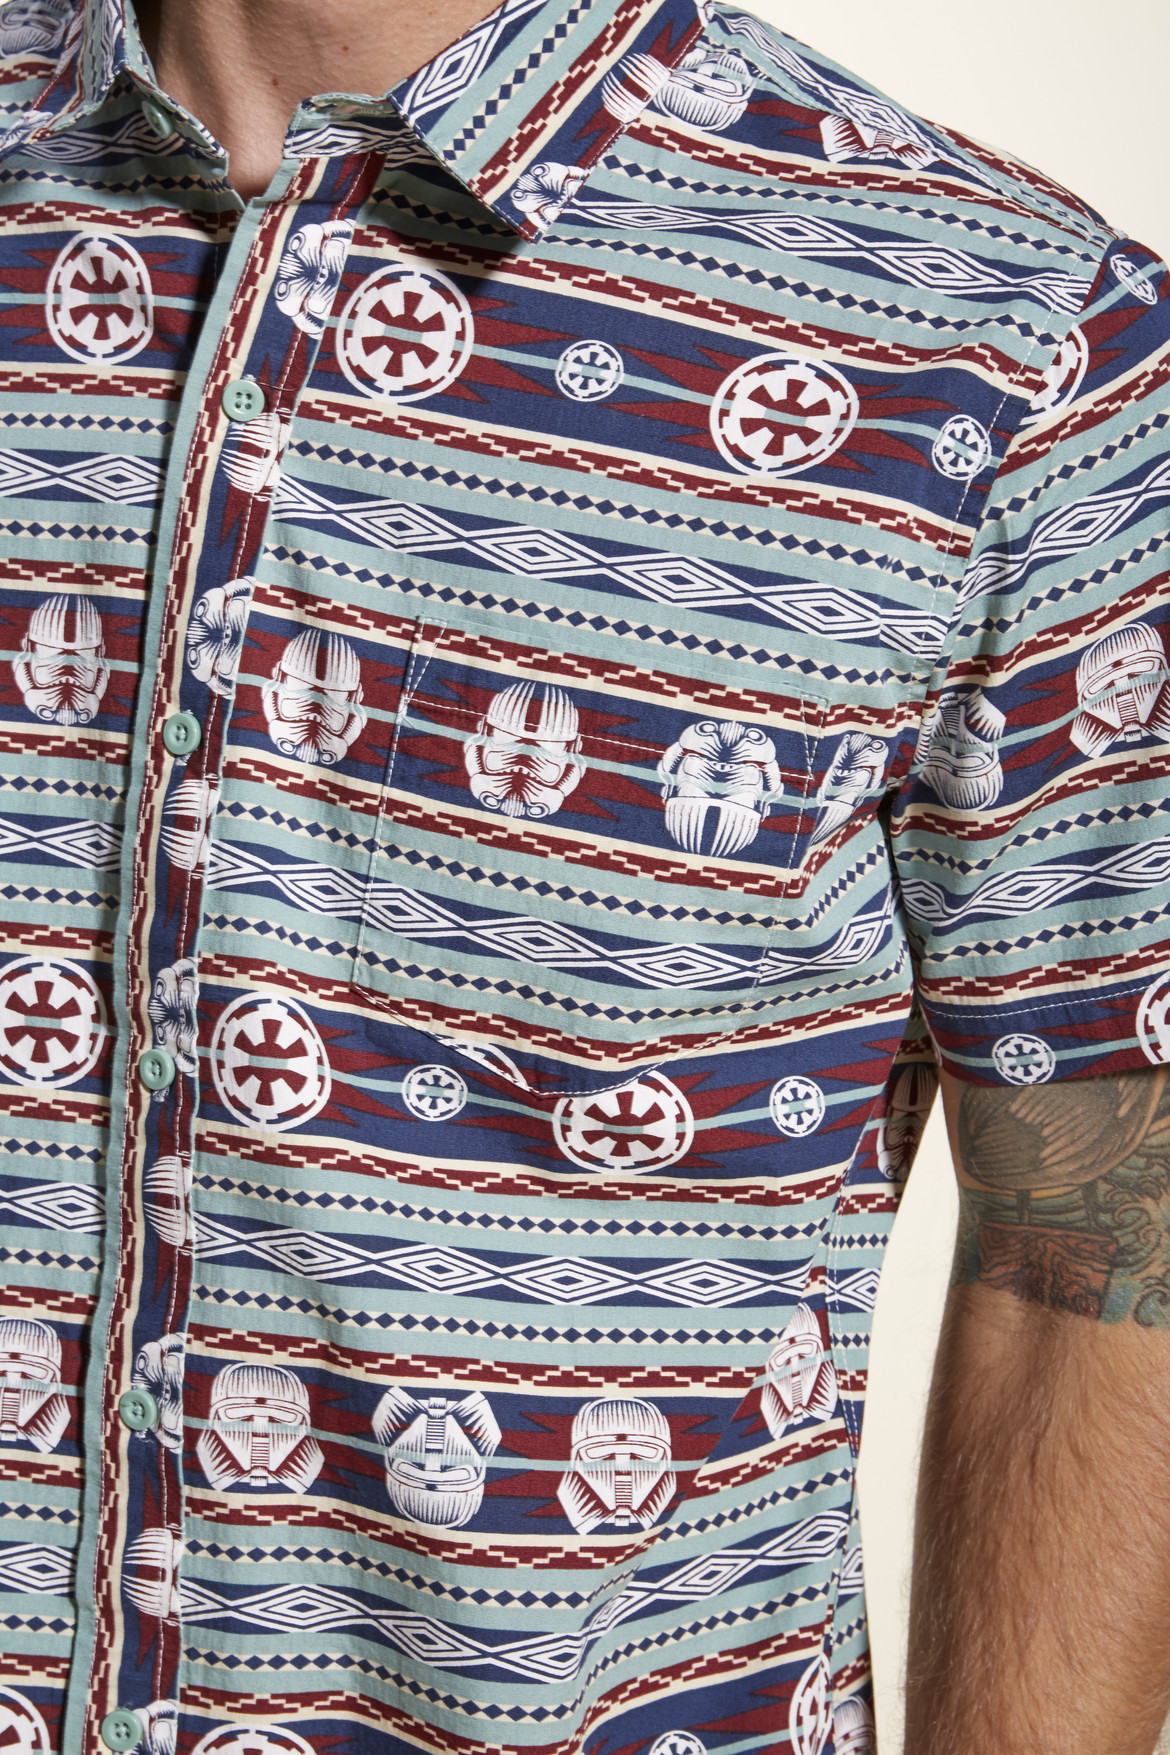 star_wars_solo_pattern_button-up_detail.jpg